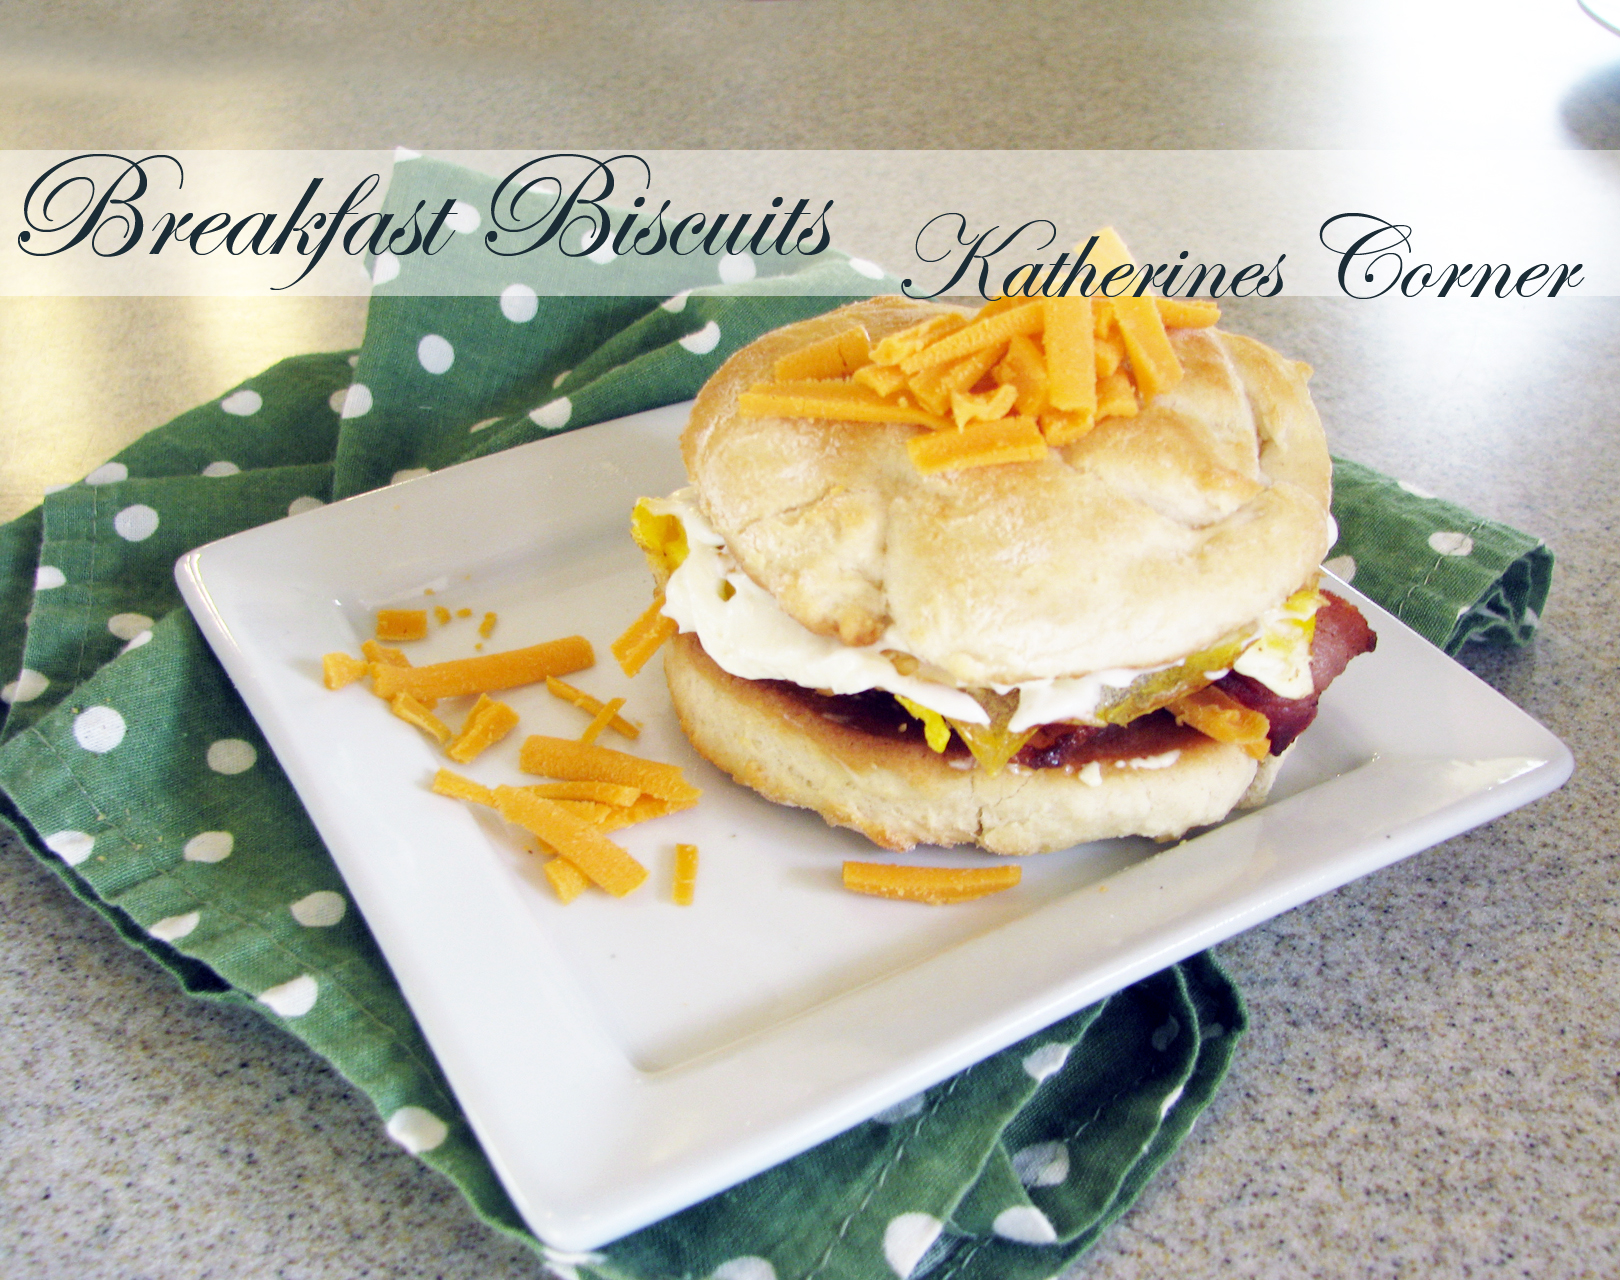 Meals On Monday, Breakfast Biscuits